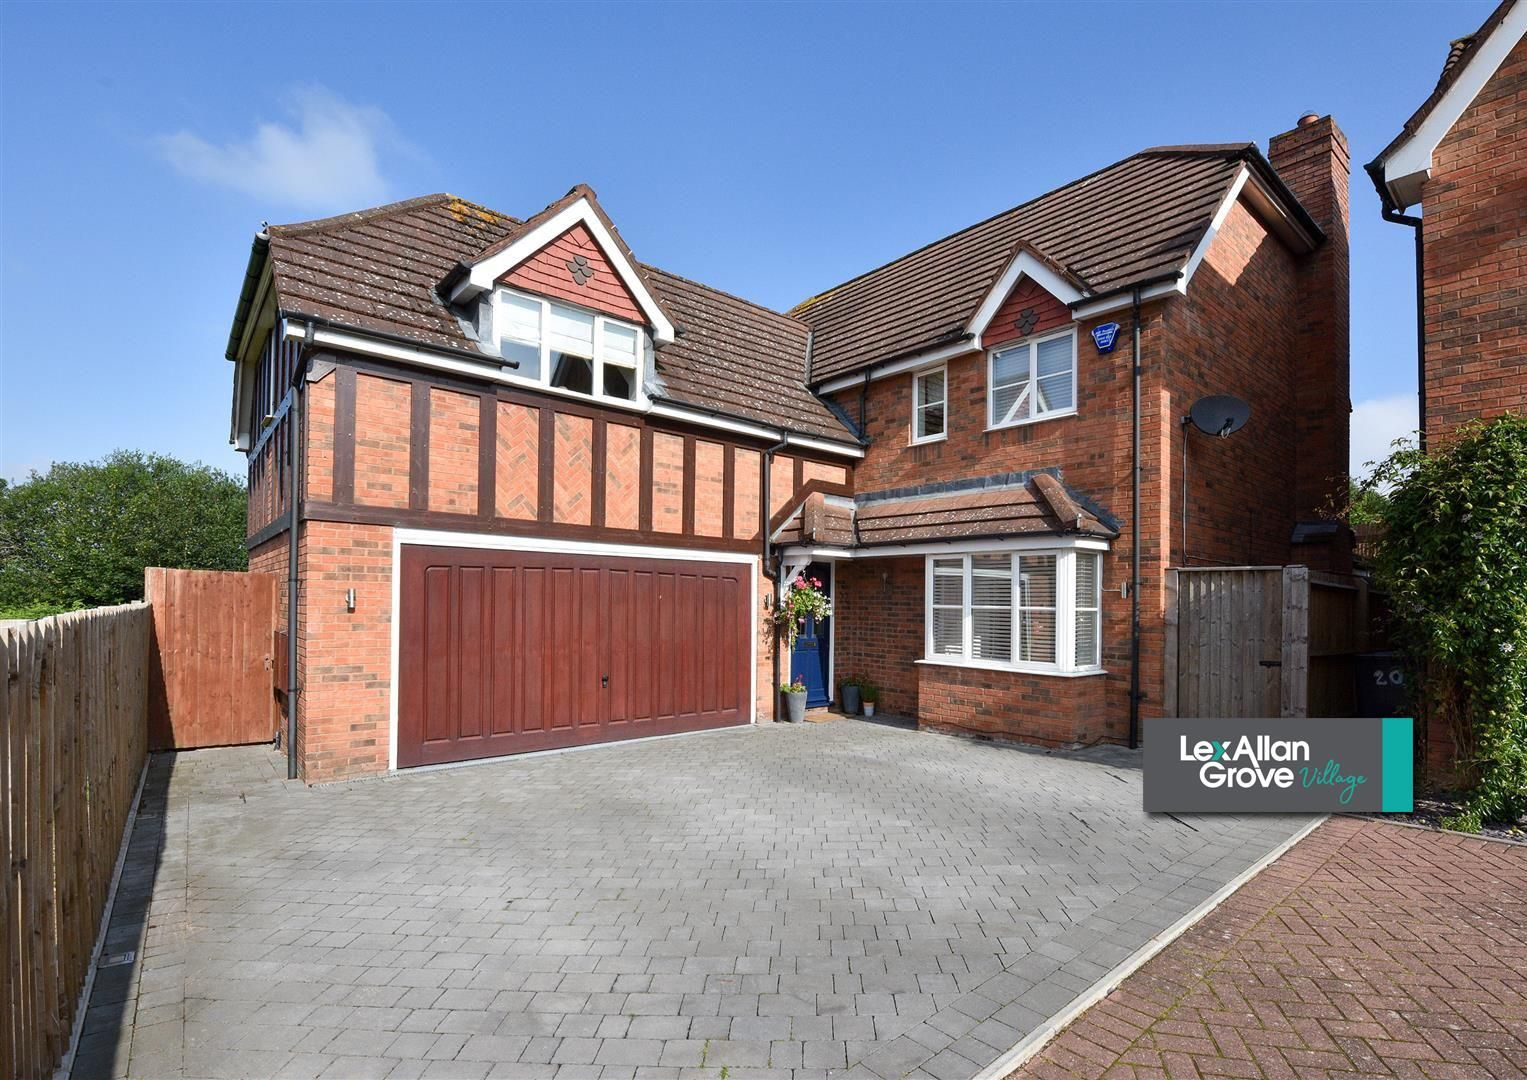 5 bed house for sale in Hagley  - Property Image 1